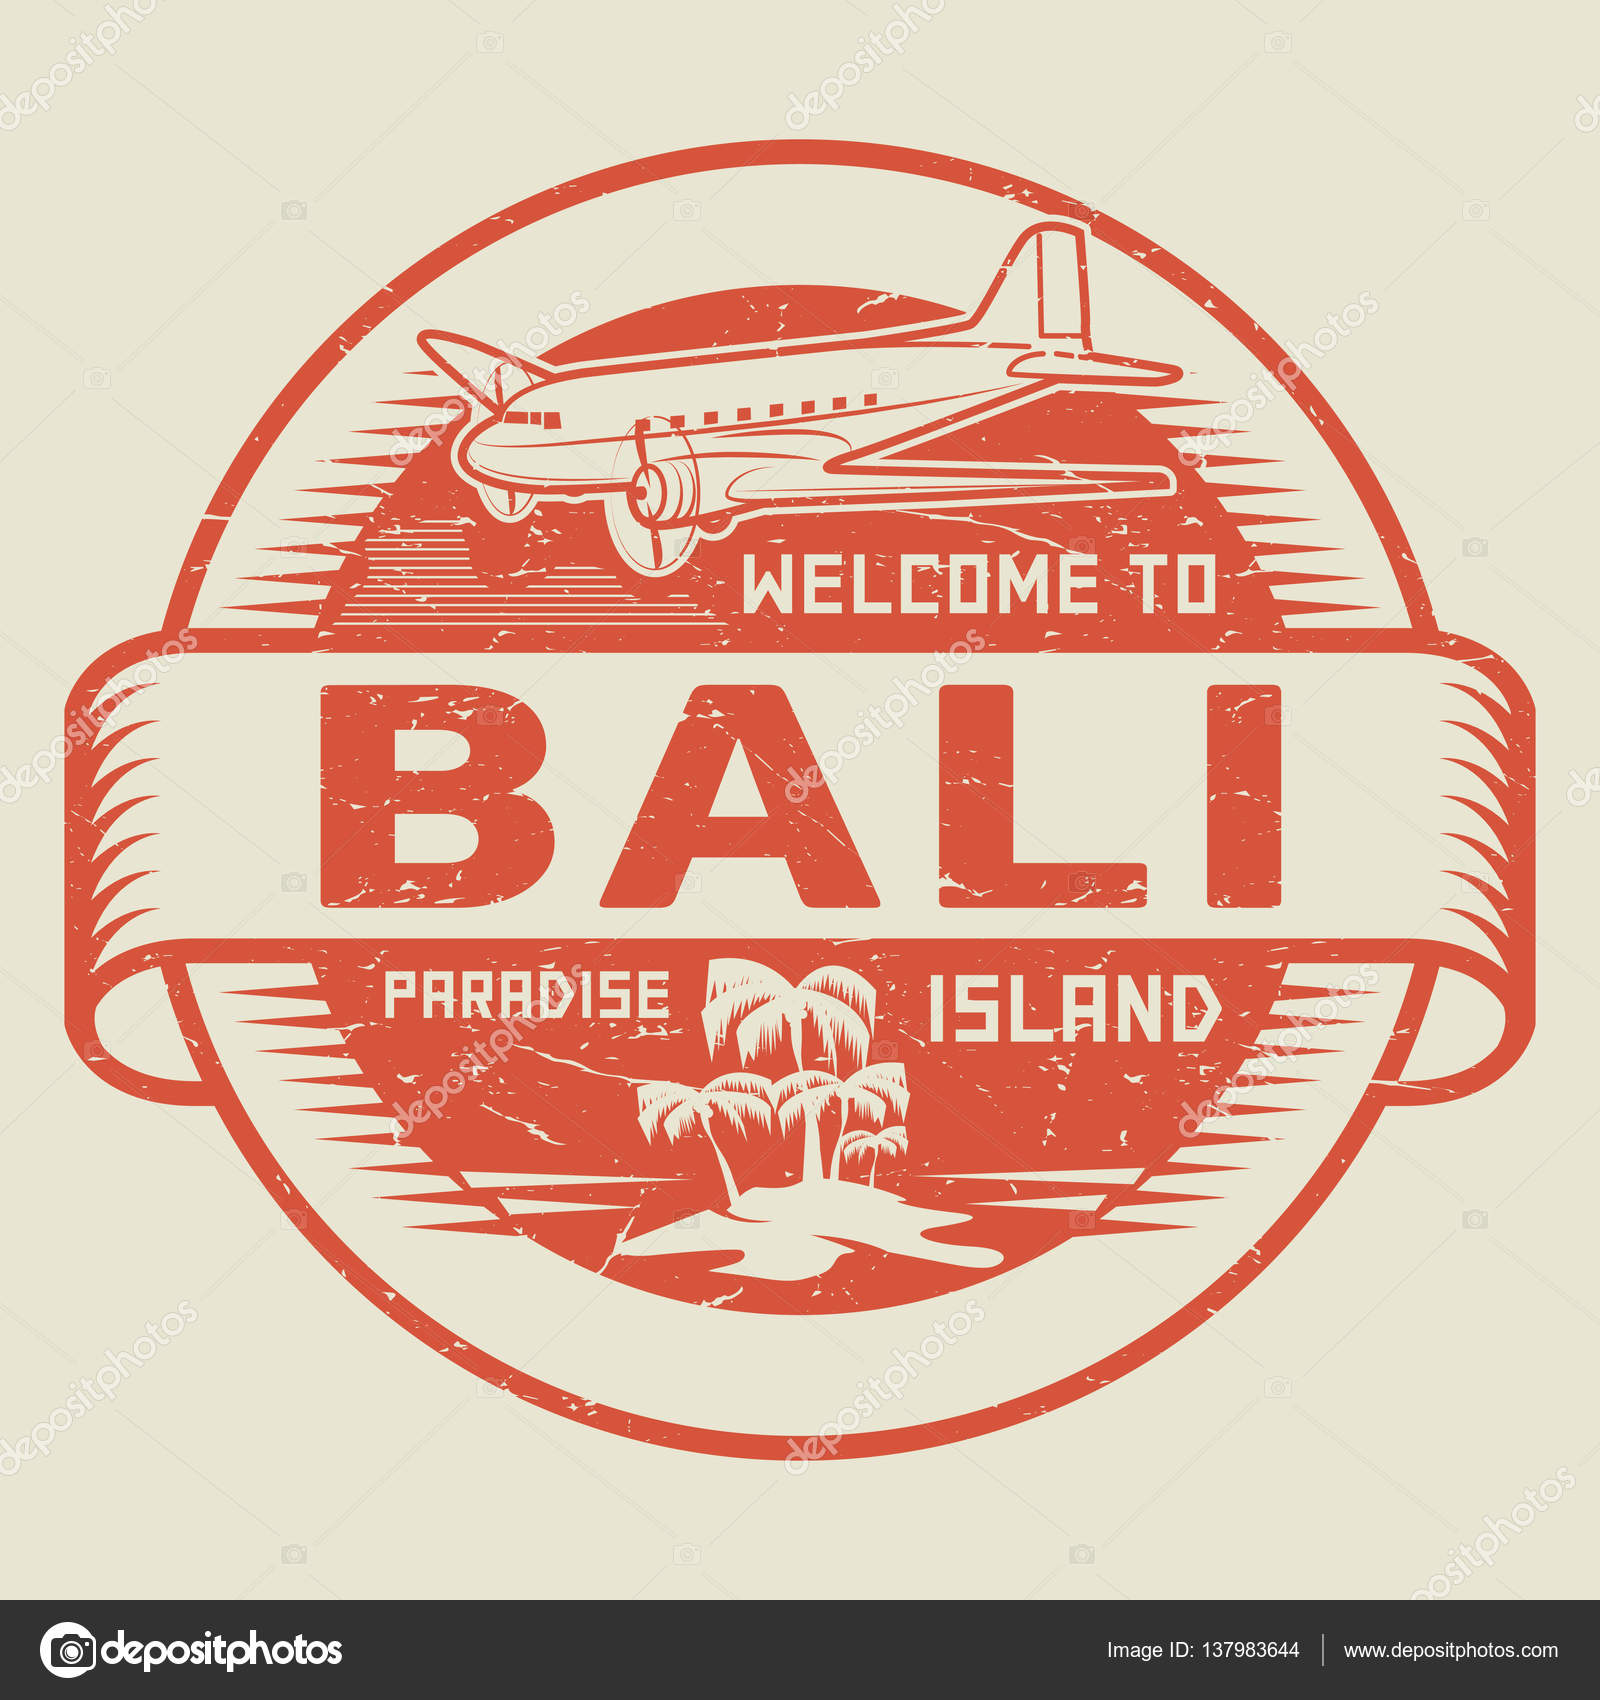 Stamp with the text welcome to bali paradise island stock vector stamp with the text welcome to bali paradise island stock vector altavistaventures Gallery